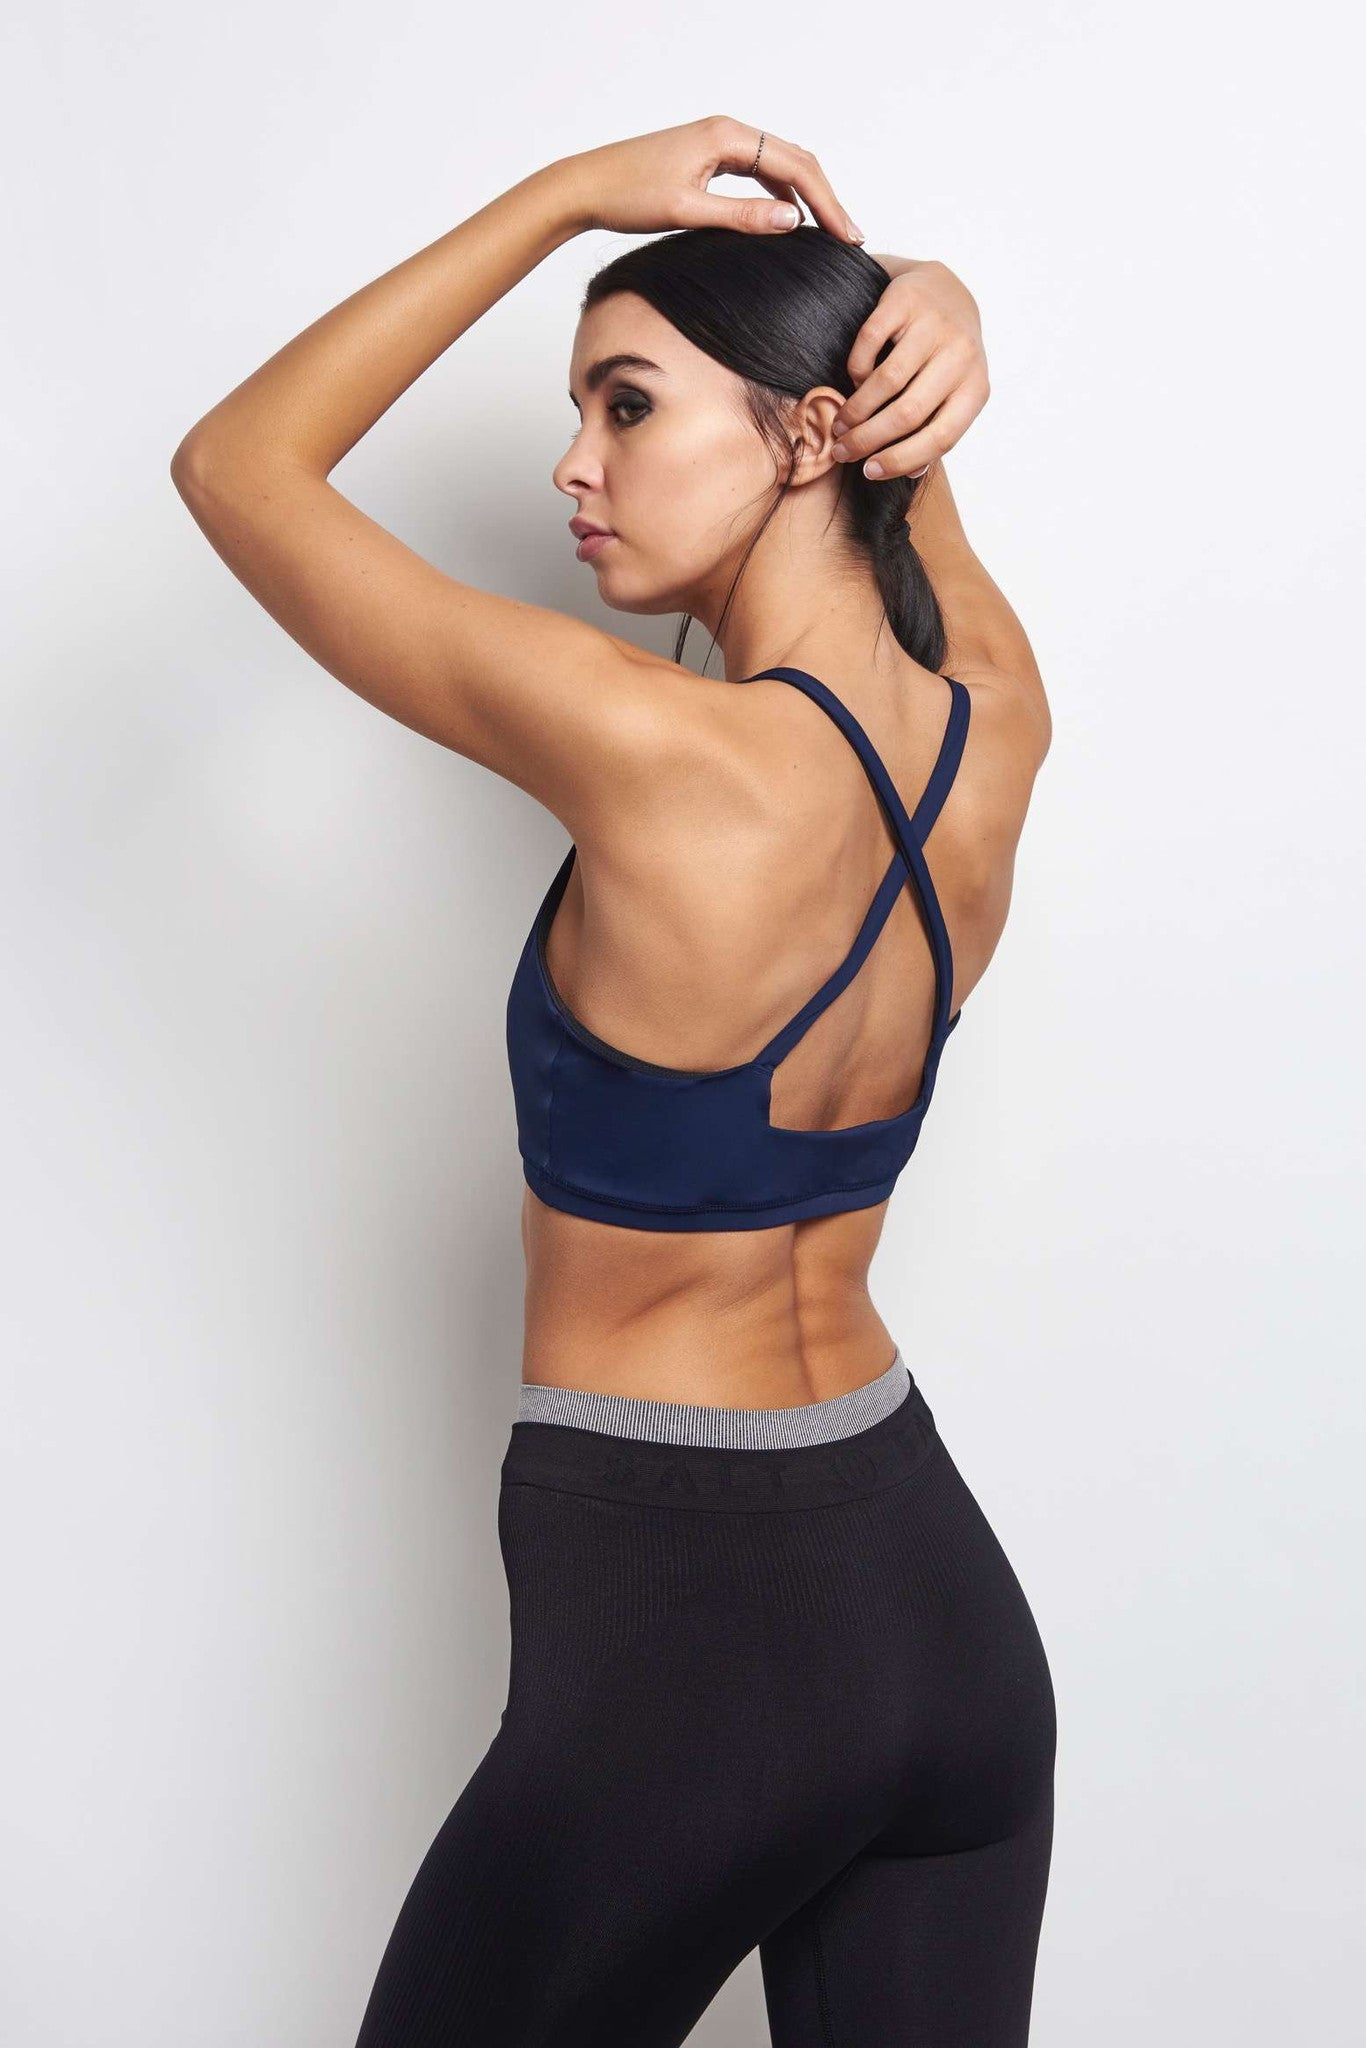 Lucas Hugh Core Performance Cross Back Sports Bra - Midnight image 2 - The Sports Edit